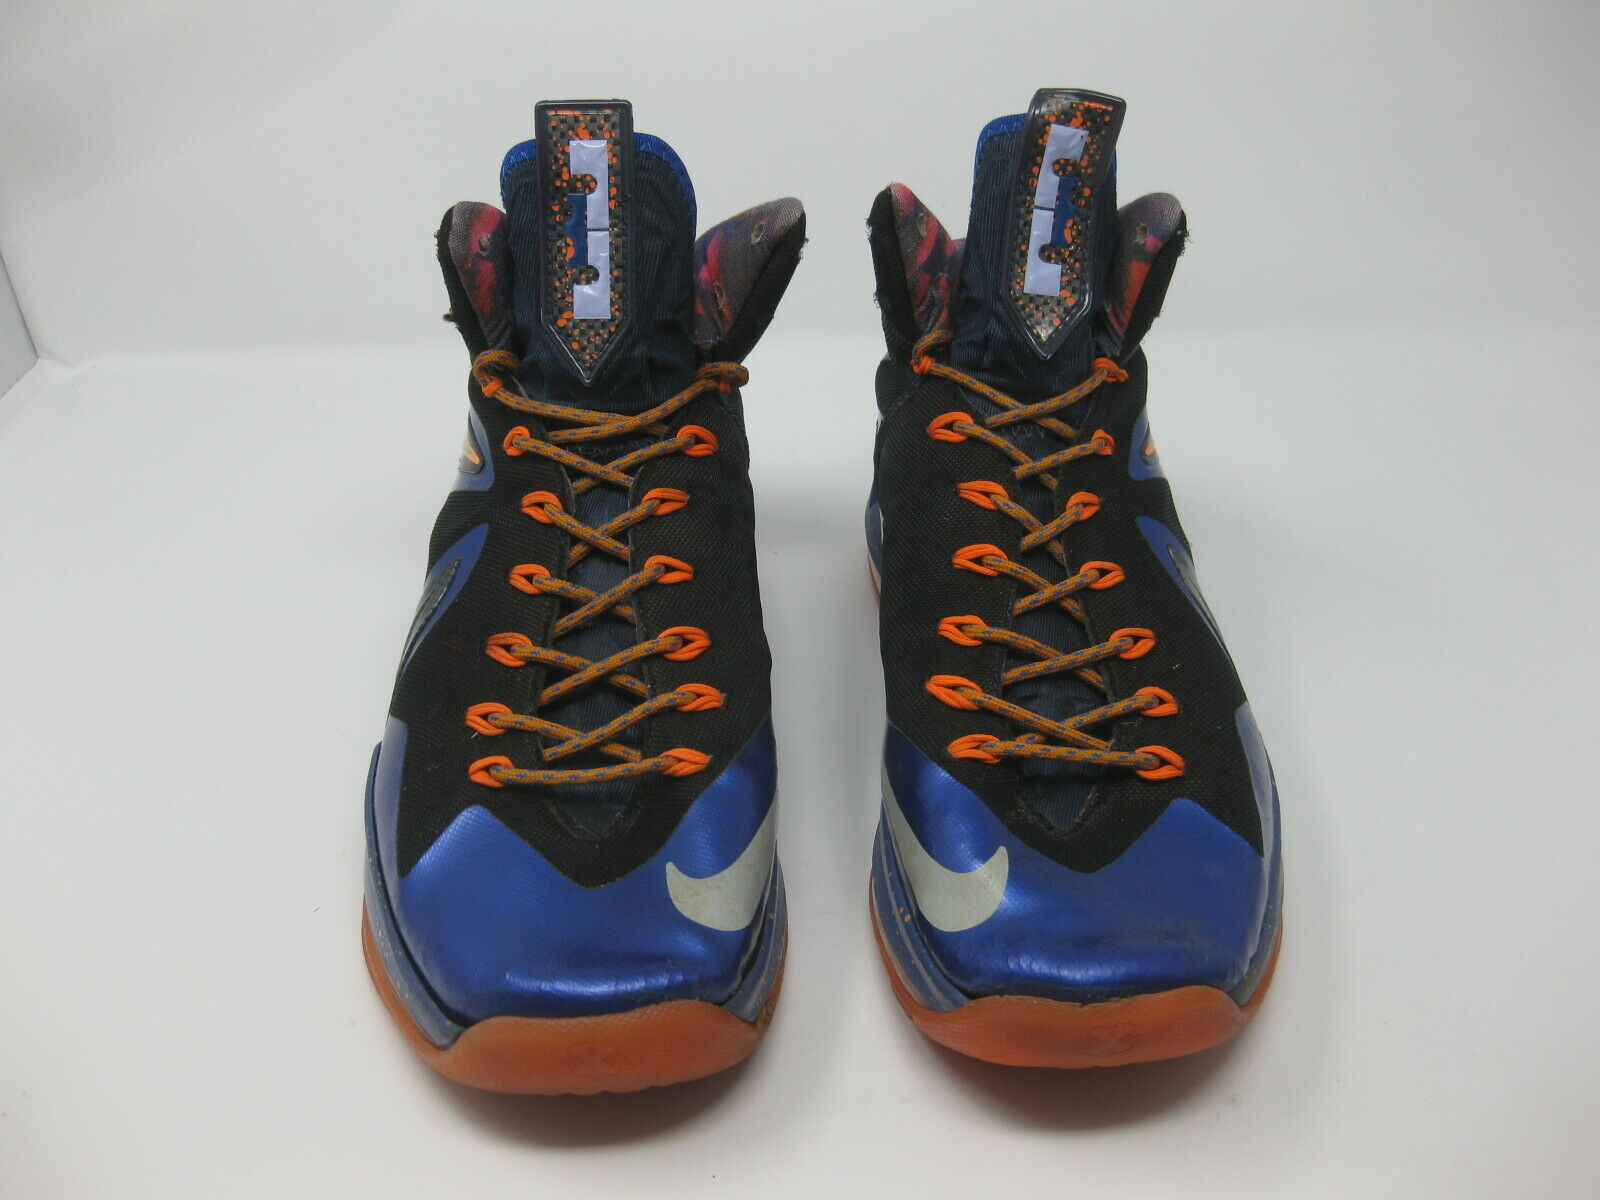 Nike LeBron X 10 PS Elite Superhero Men's Shoes Size 8.5 Blue 579827-400